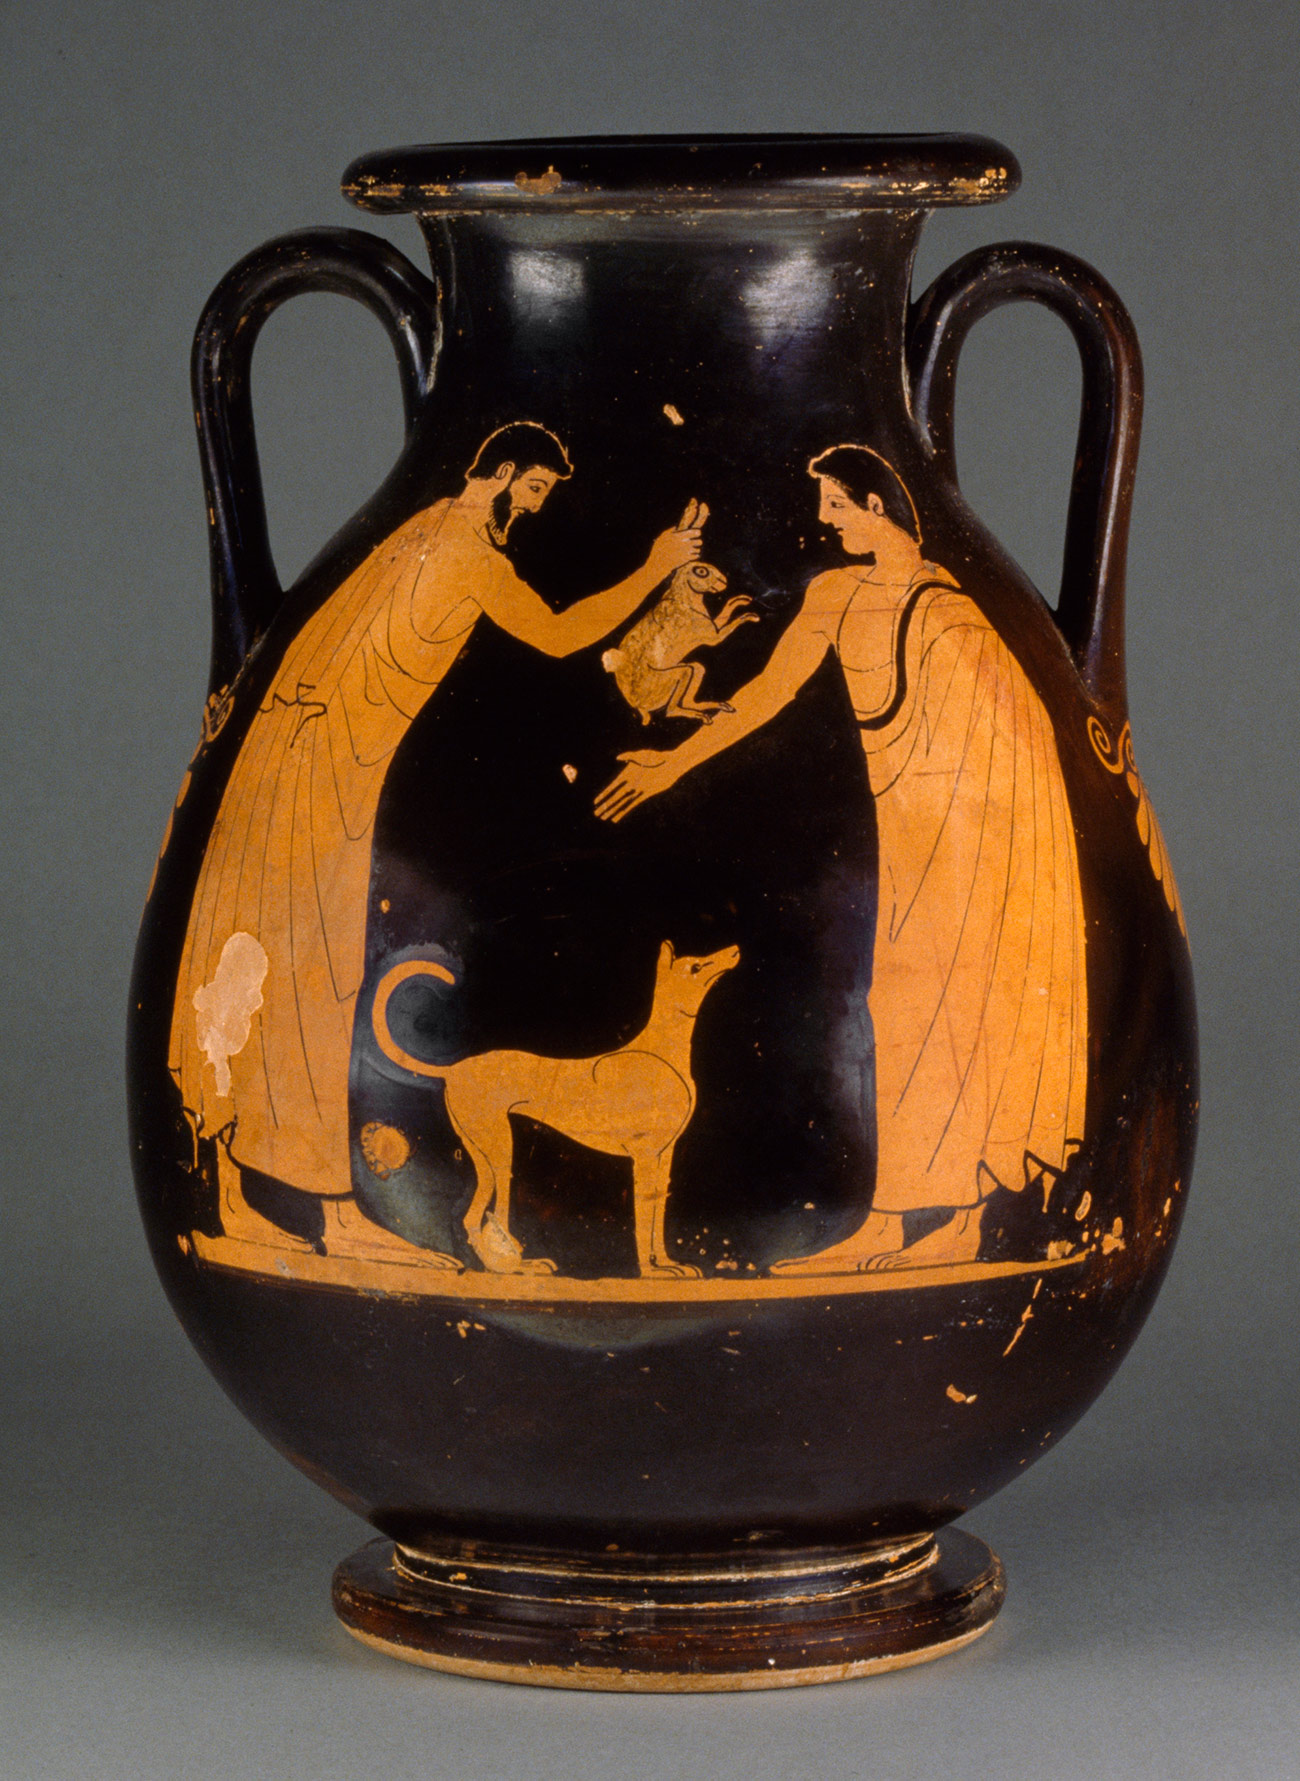 Black vase with amber-colored figures. Two men stand over a dog, one holding a rabbit by its ears.